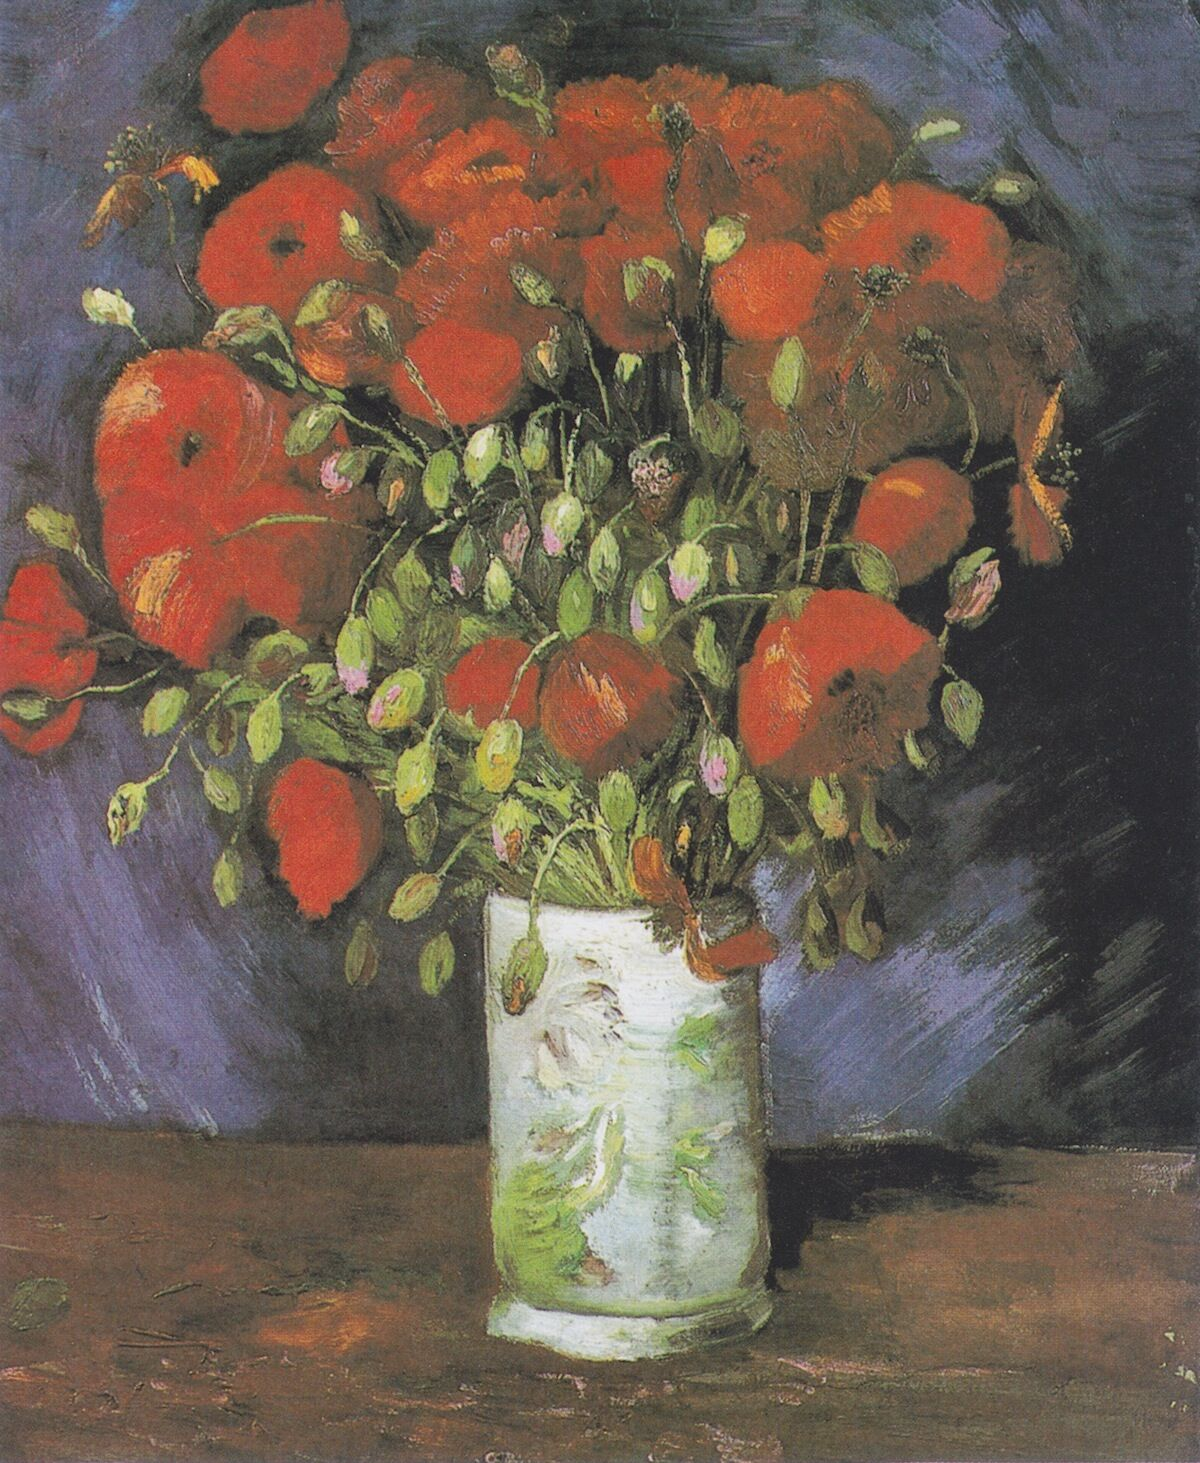 Vincent van Gogh, Vase With Poppies, 1886. Courtesy Wadsworth Atheneum Museum of Art, via Wikimedia Commons.